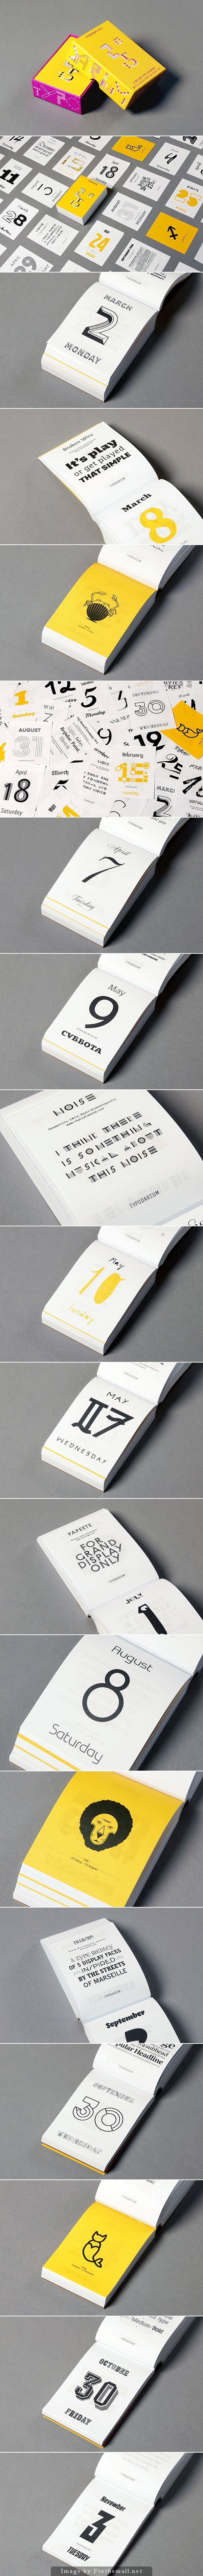 Typodarium 2015 by Slanted Publishers